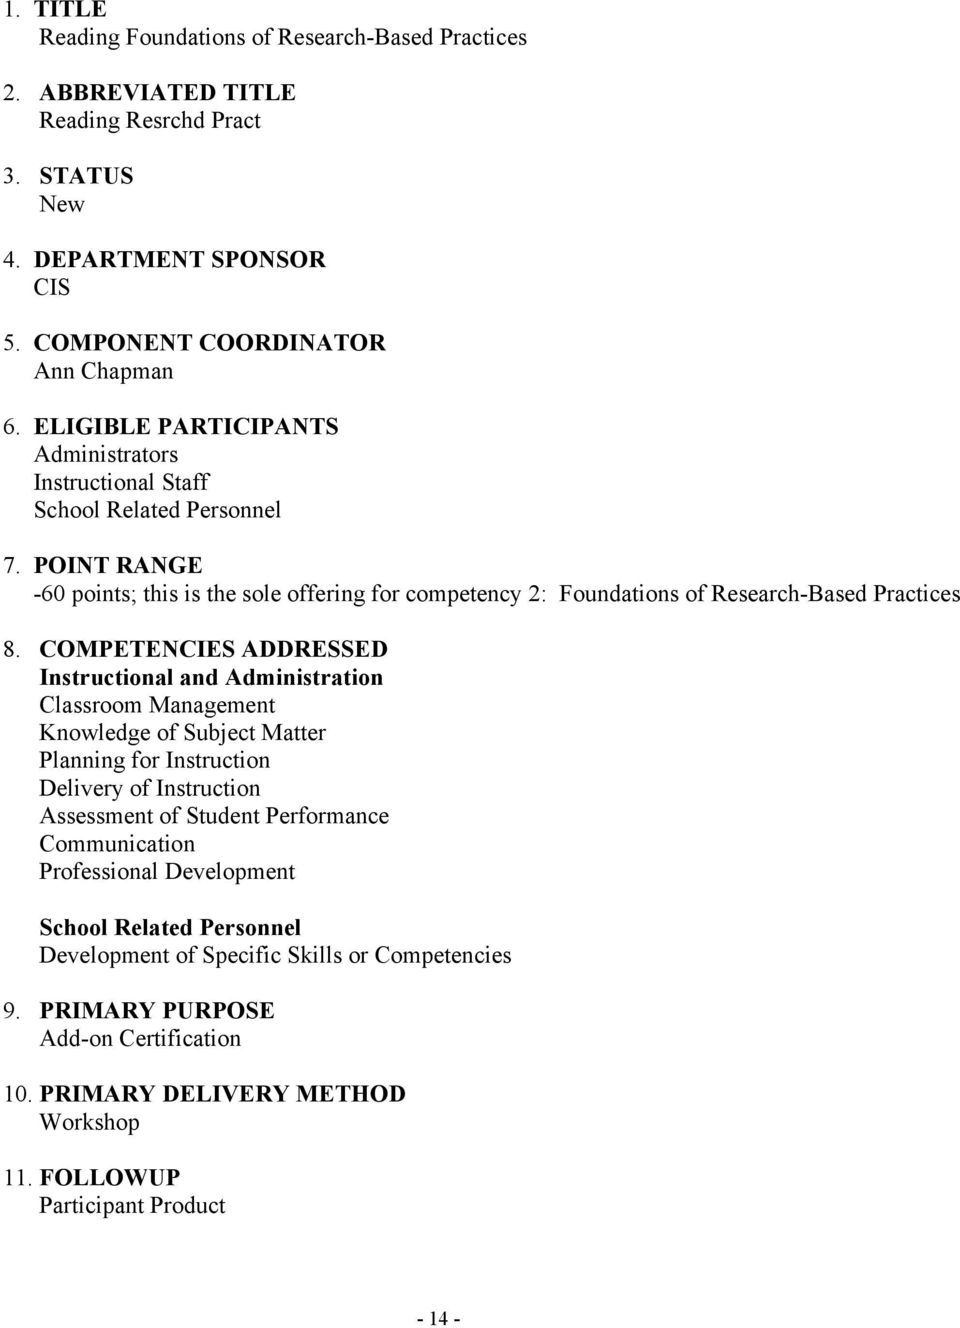 COMPETENCIES ADDRESSED Instructional and Administration Classroom Management Knowledge of Subject Matter Planning for Instruction Delivery of Instruction Assessment of Student Performance